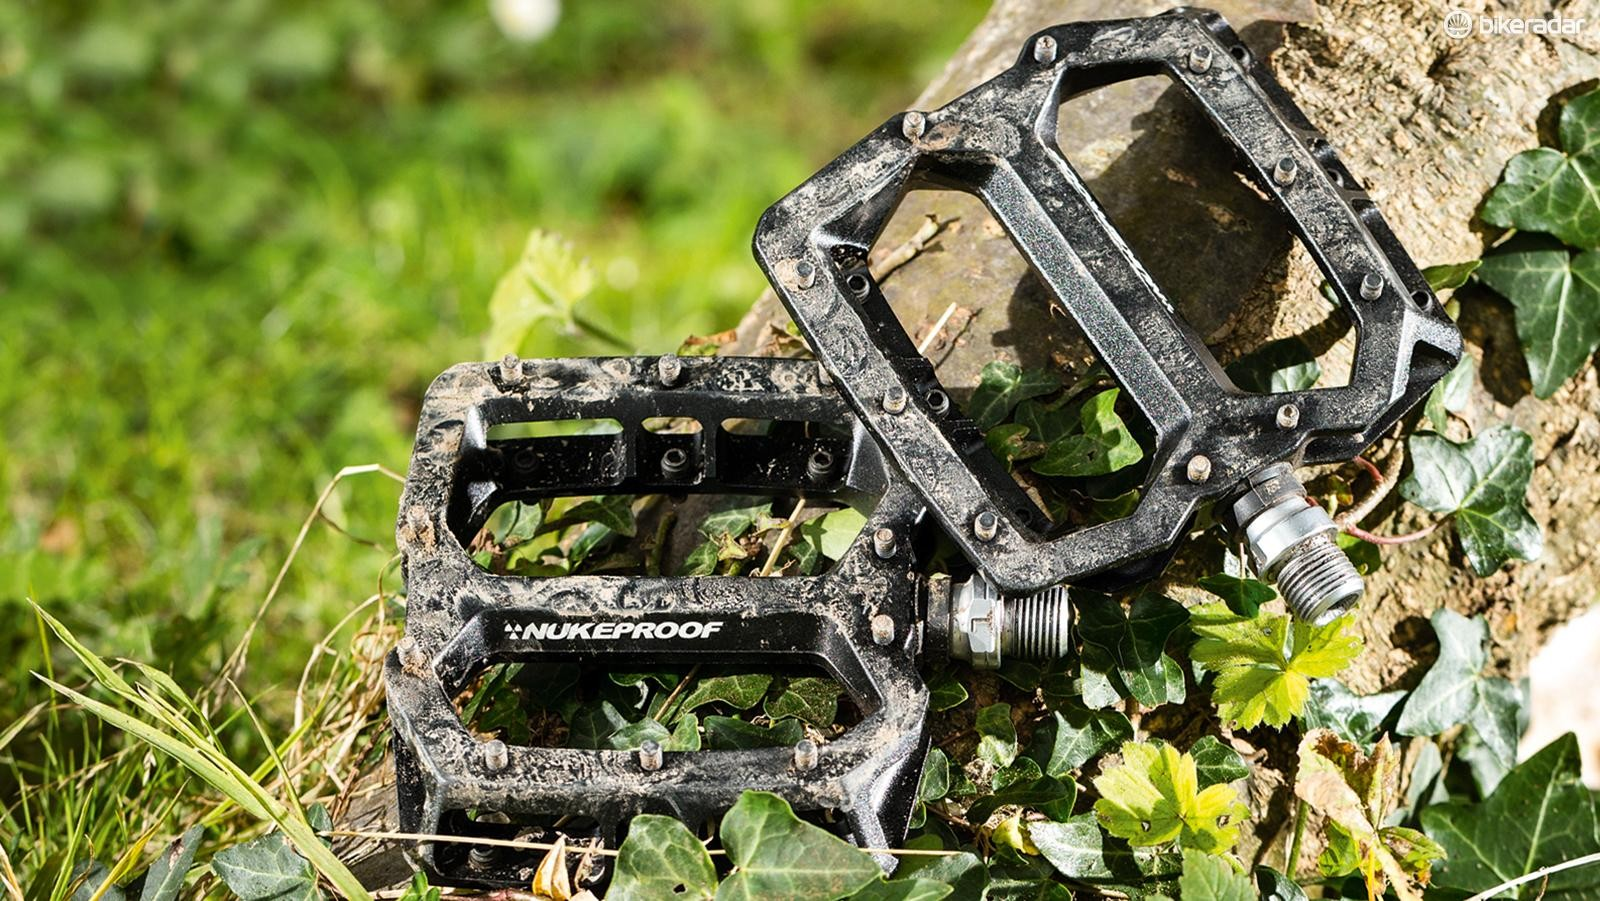 Get some of the best performing flat pedals around